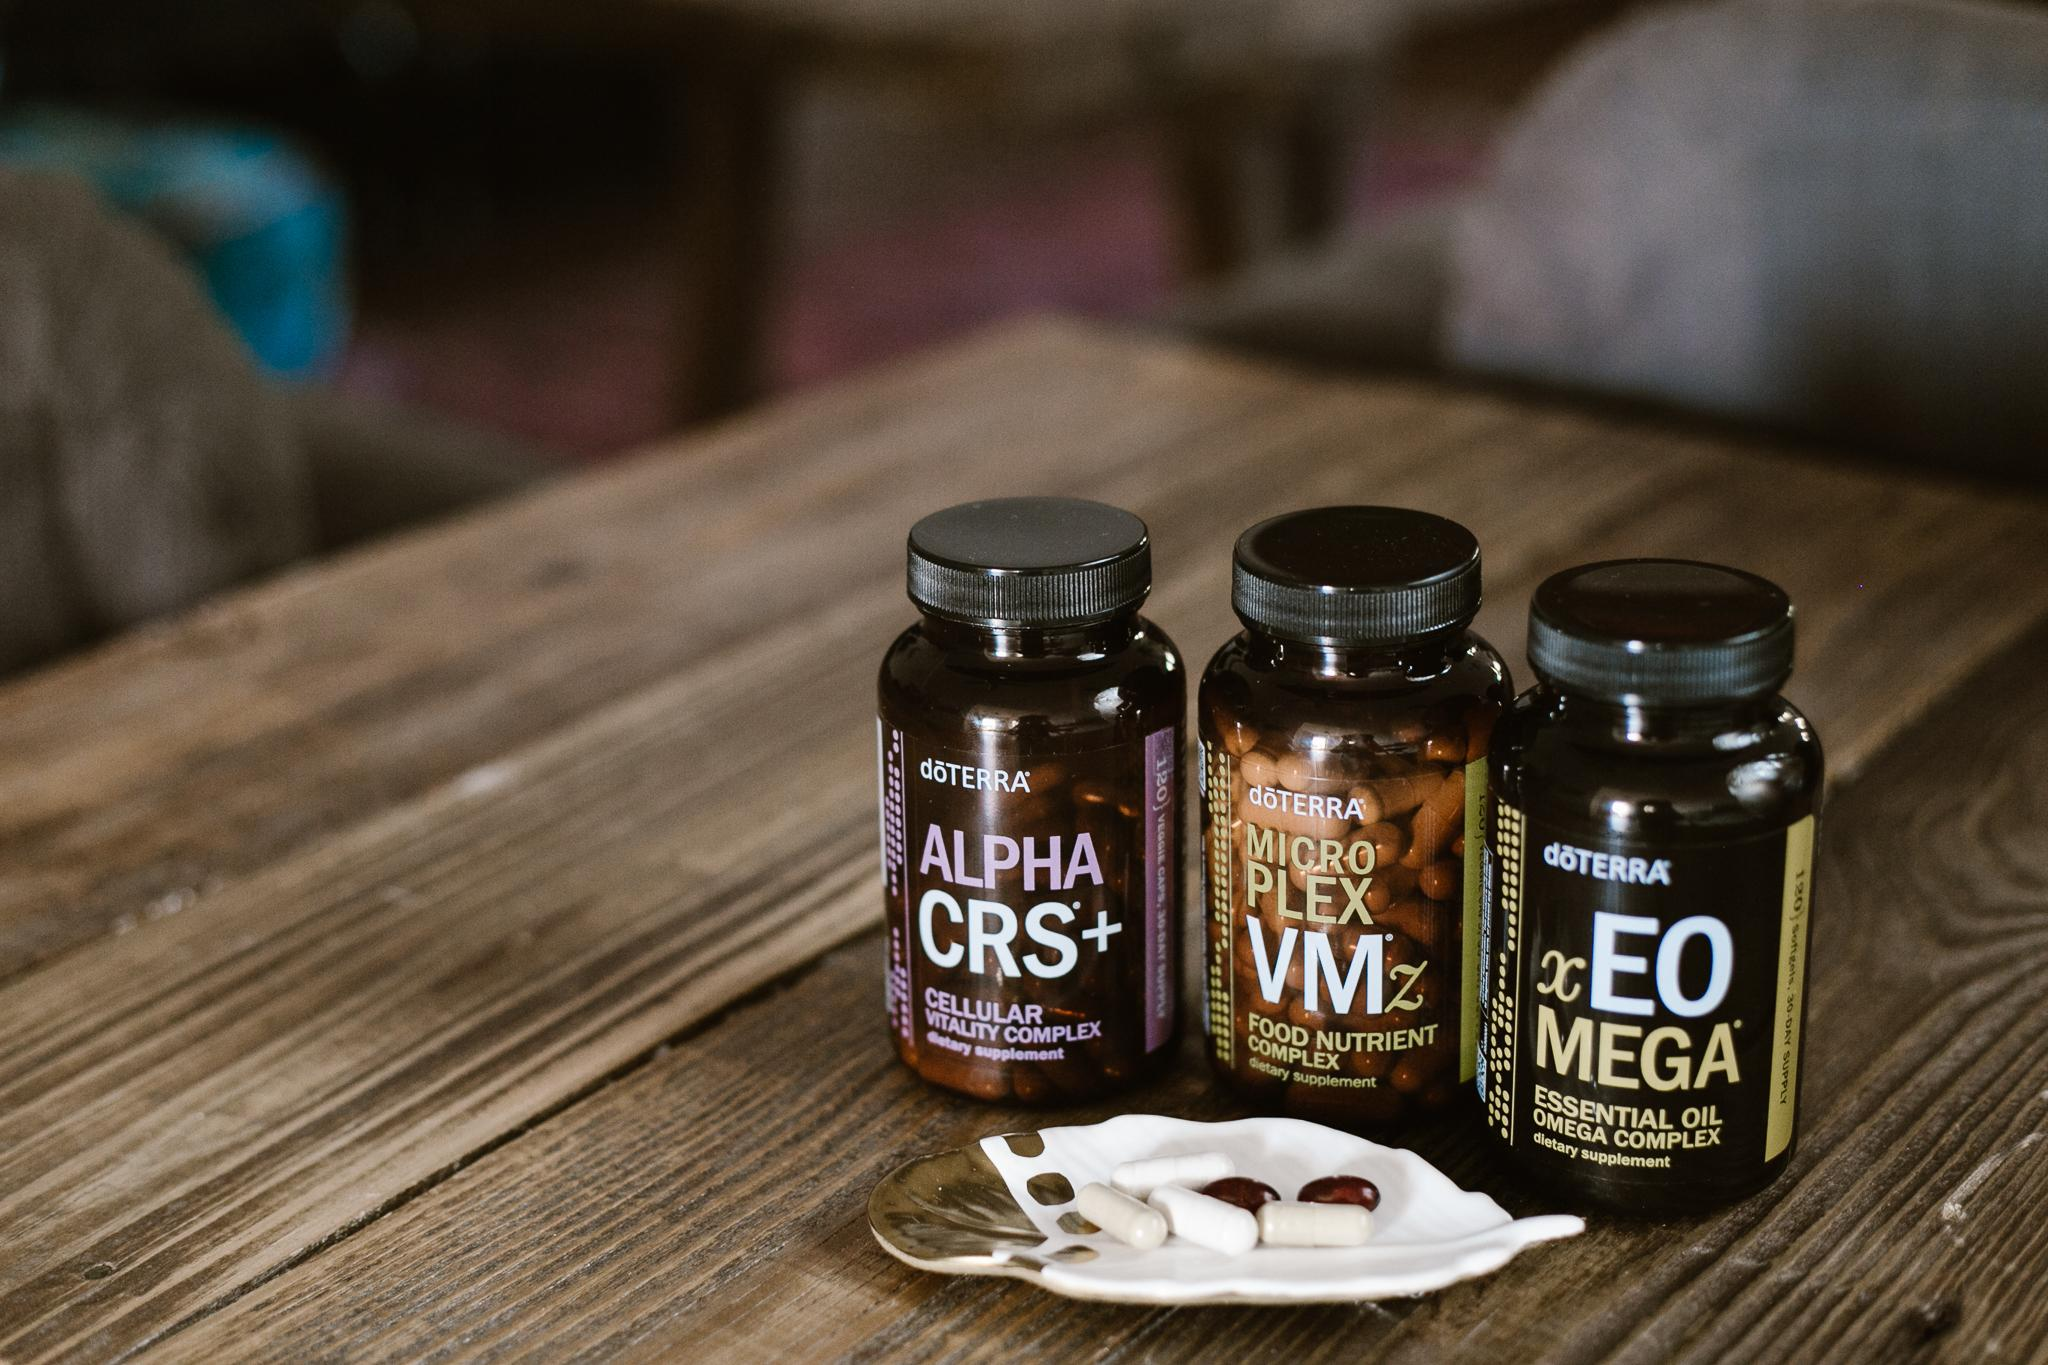 doTERRA Long Life Vitality supplements on wood table